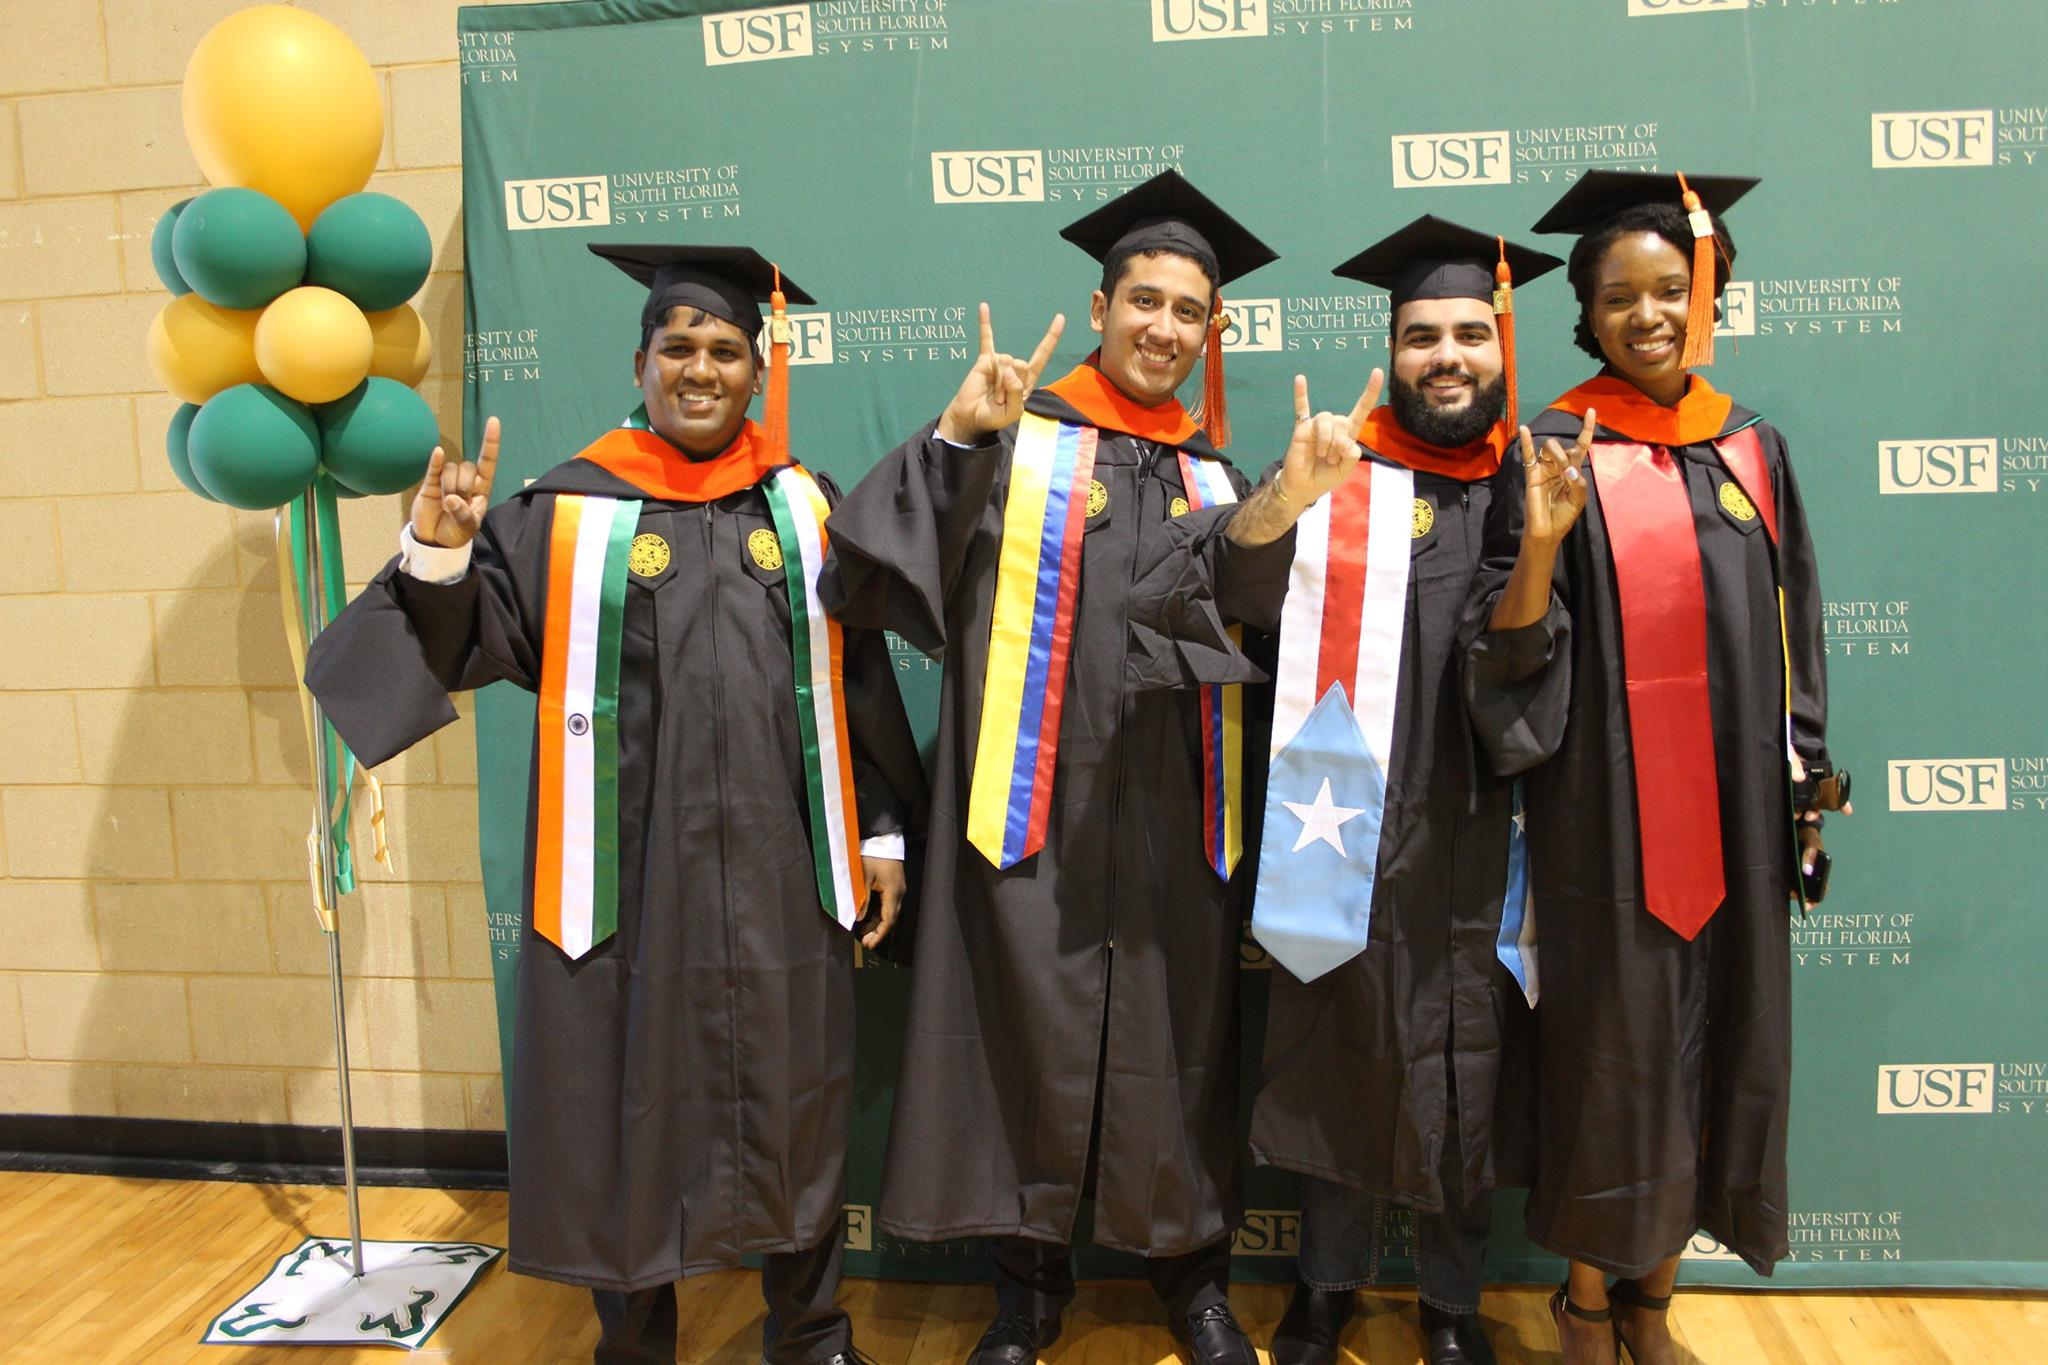 Wainella Isaacs (far right) from Guyana, just received her Master's degree in Environmental Engineering from USF, and plans to continue her PhD at the University in the same field.